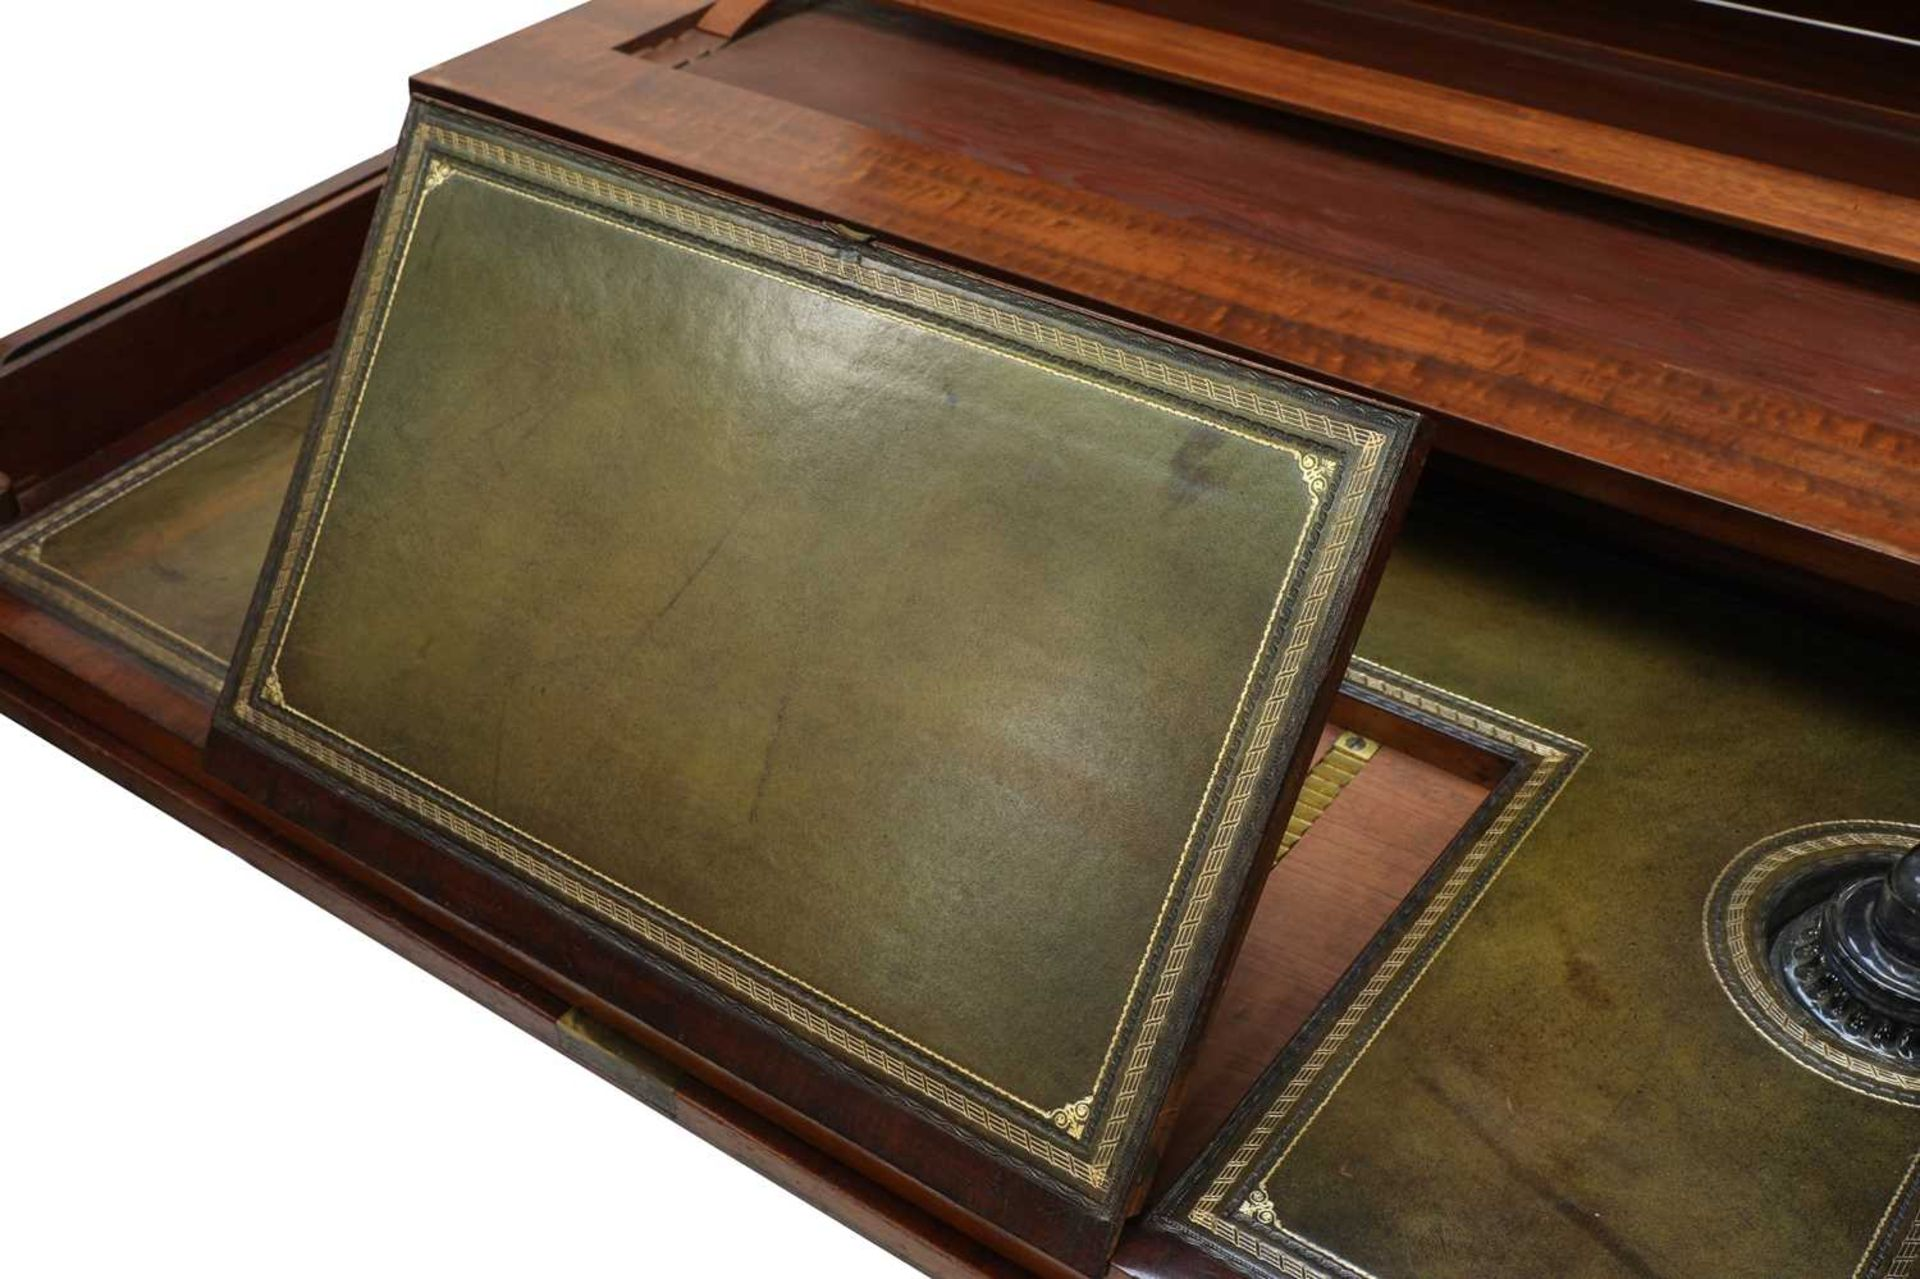 A George III mahogany architect's desk/secretaire, - Image 9 of 30